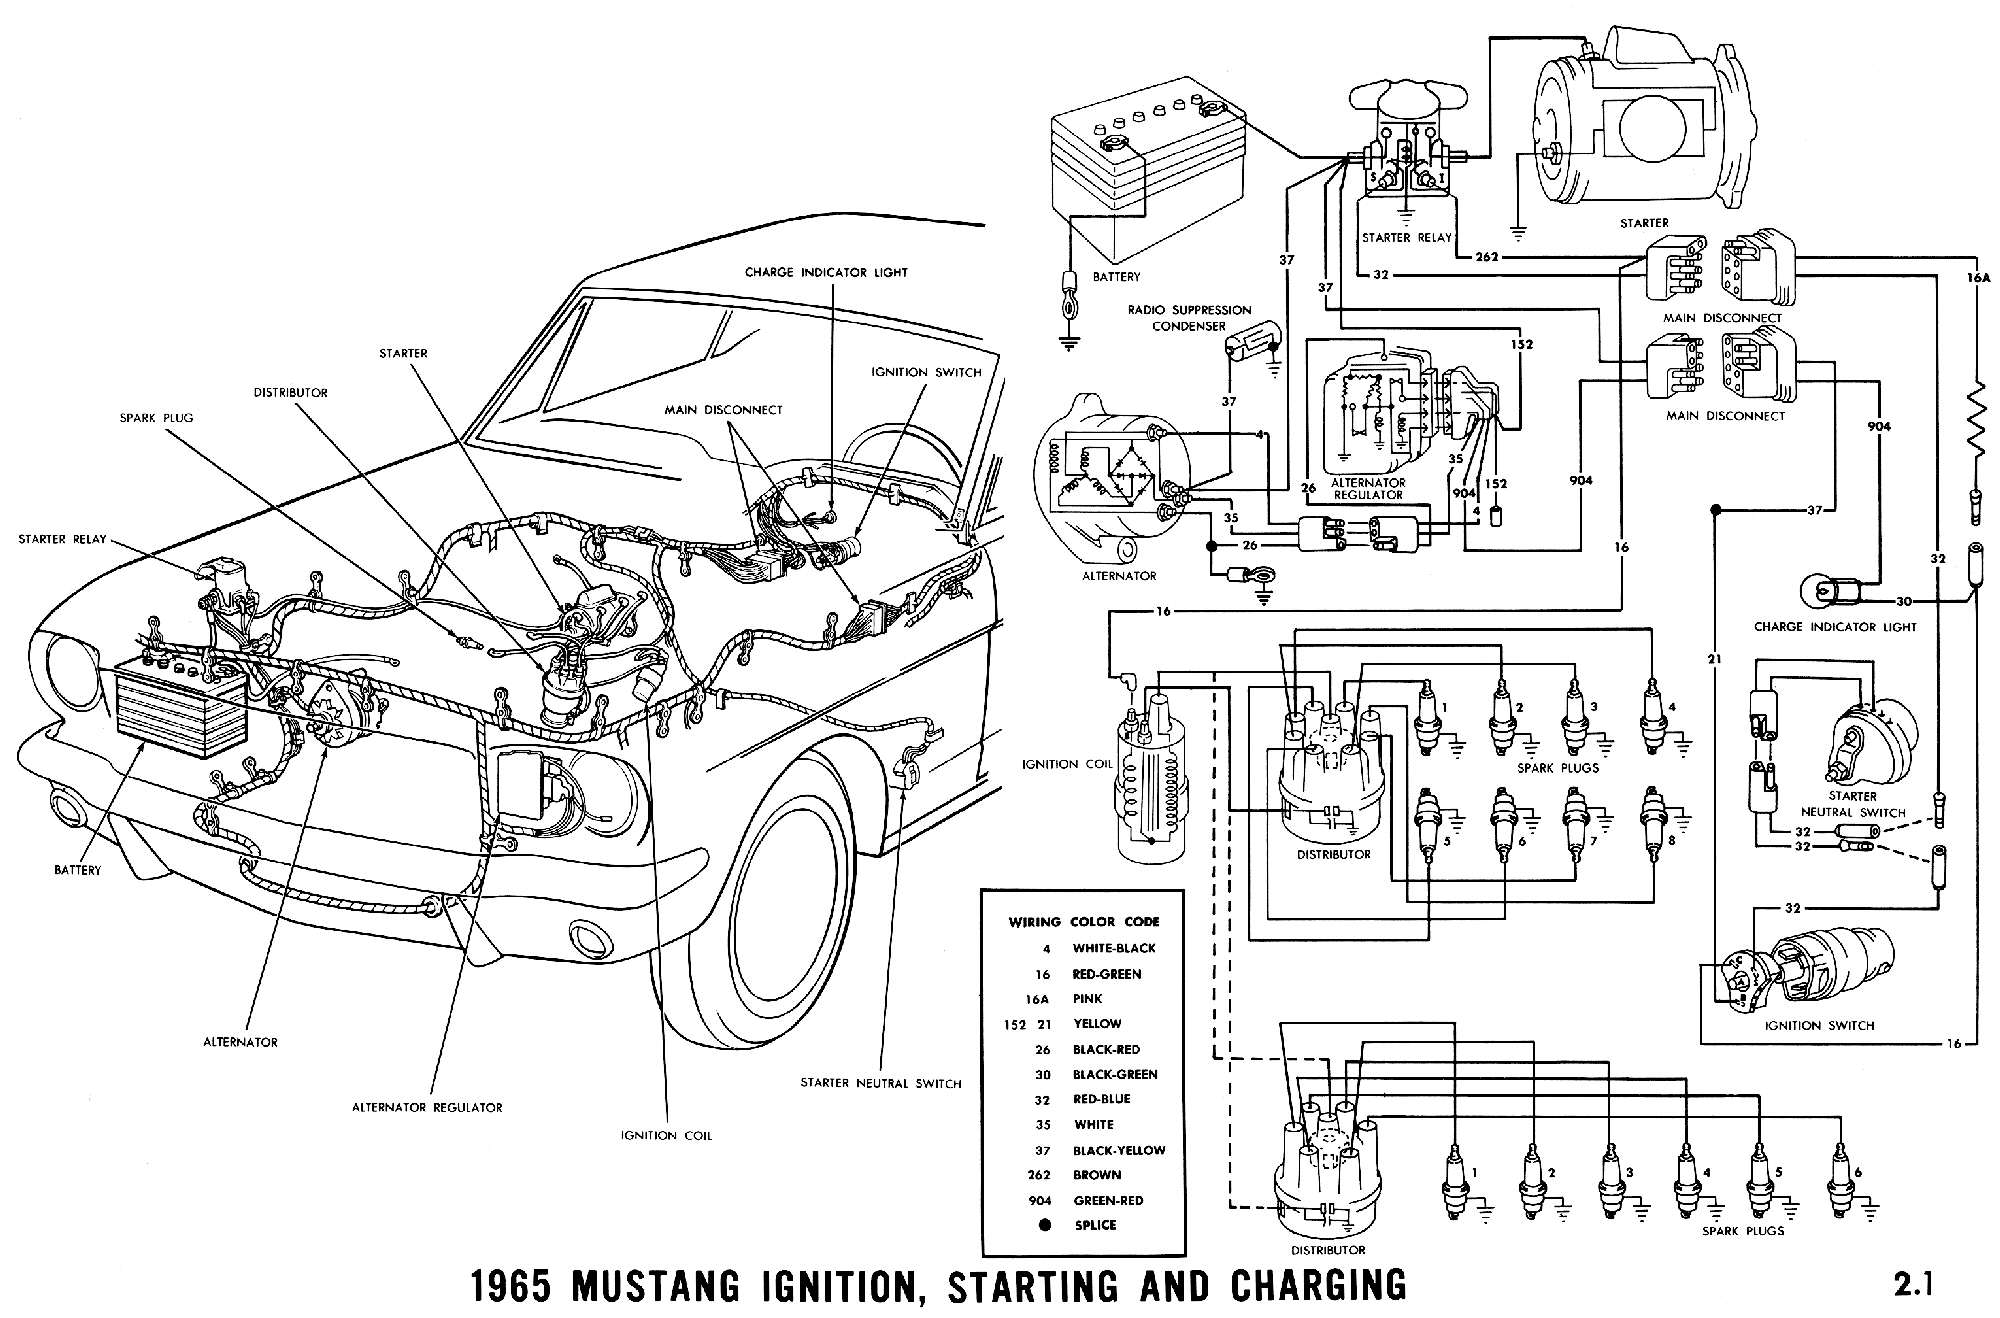 1965 mustang wiring diagrams average joe restoration charging pictorial and schematic